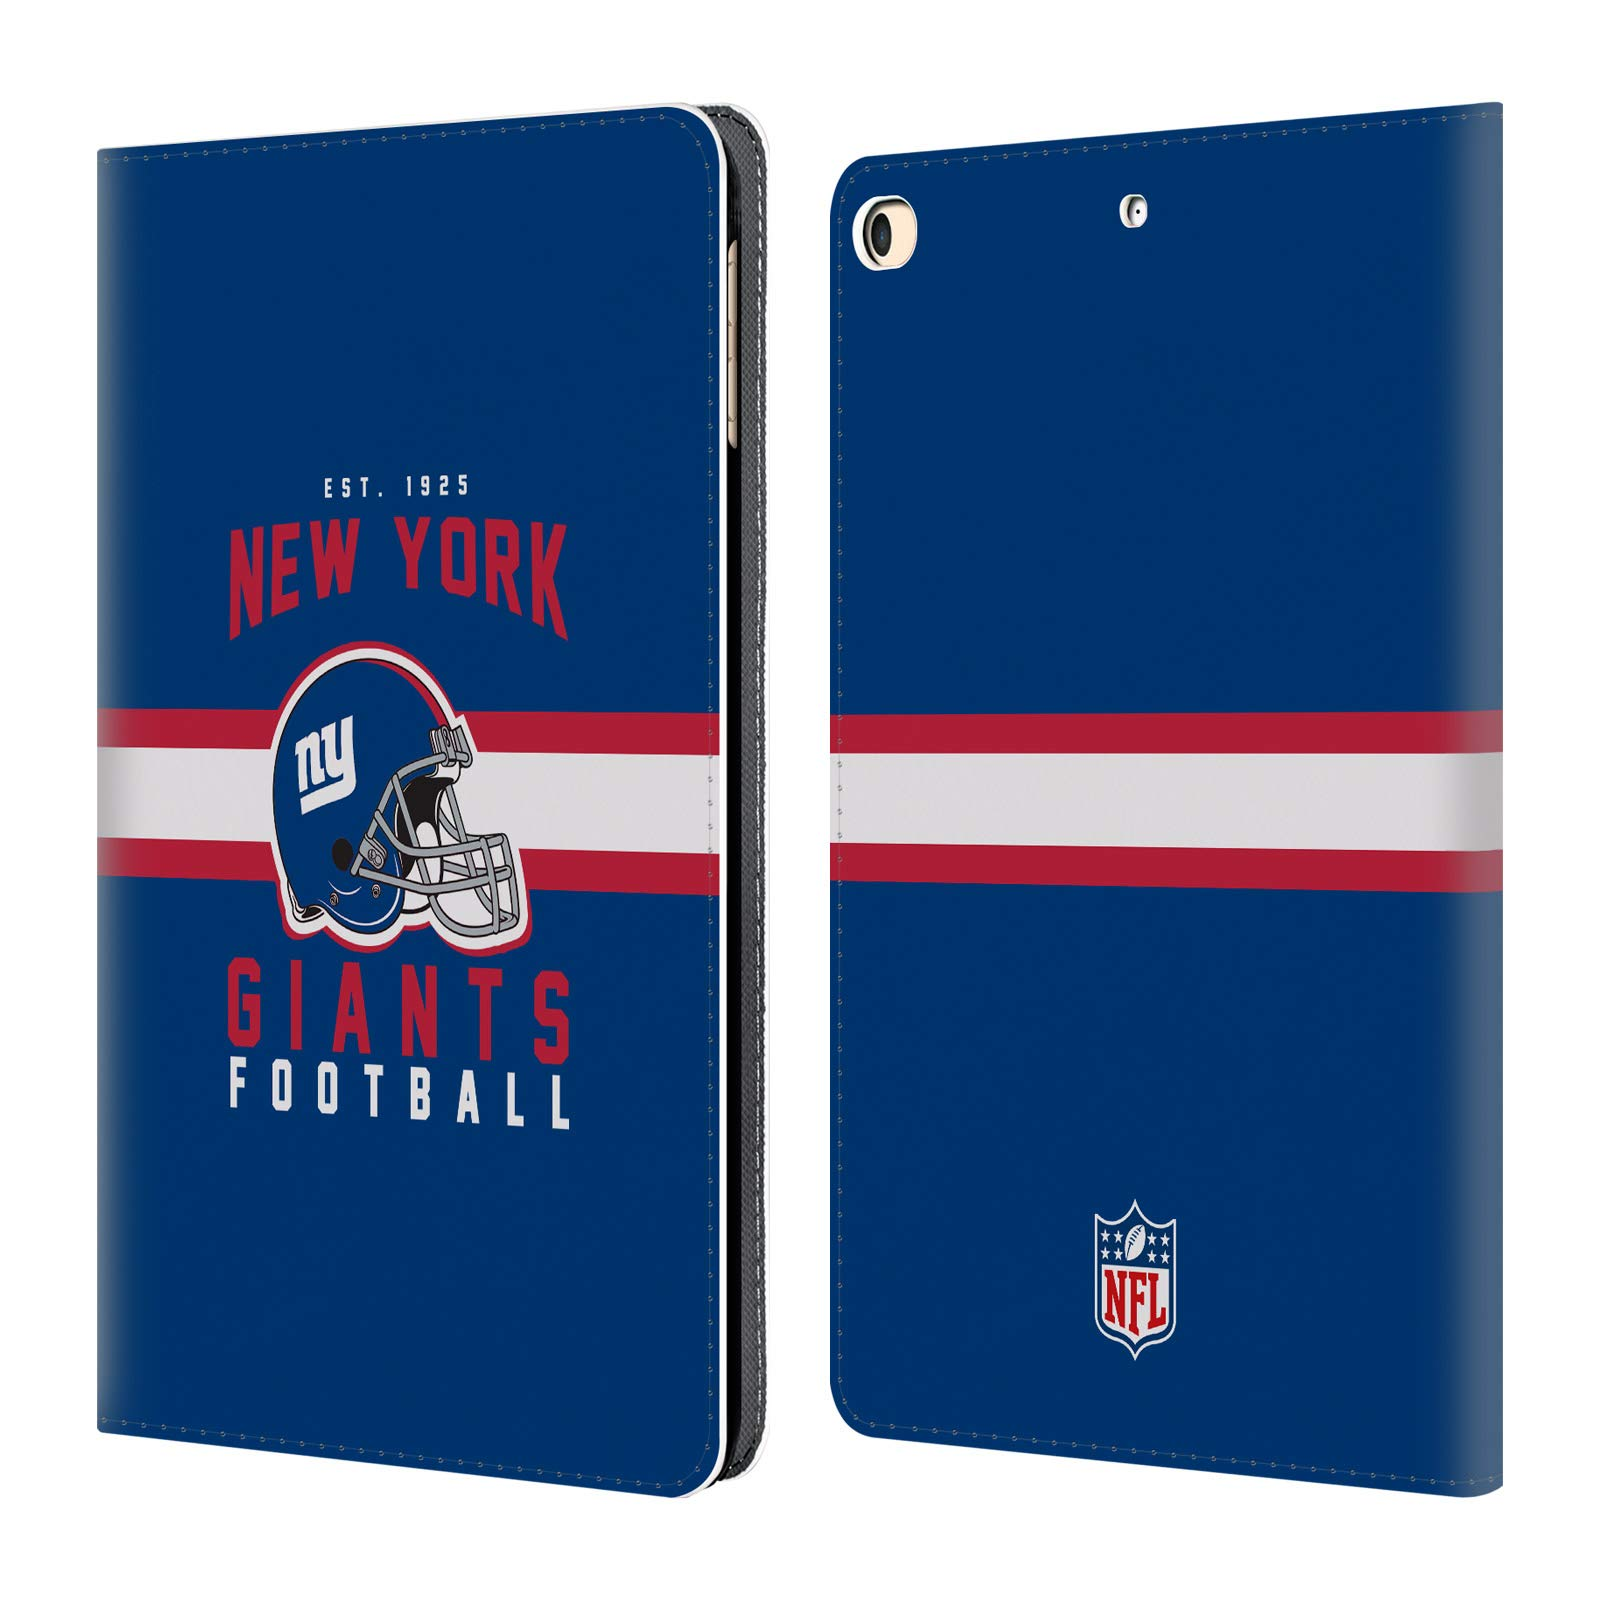 Official NFL Helmet Typography 2018/19 New York Giants Leather Book Wallet Case Cover for iPad 9.7 2017 / iPad 9.7 2018